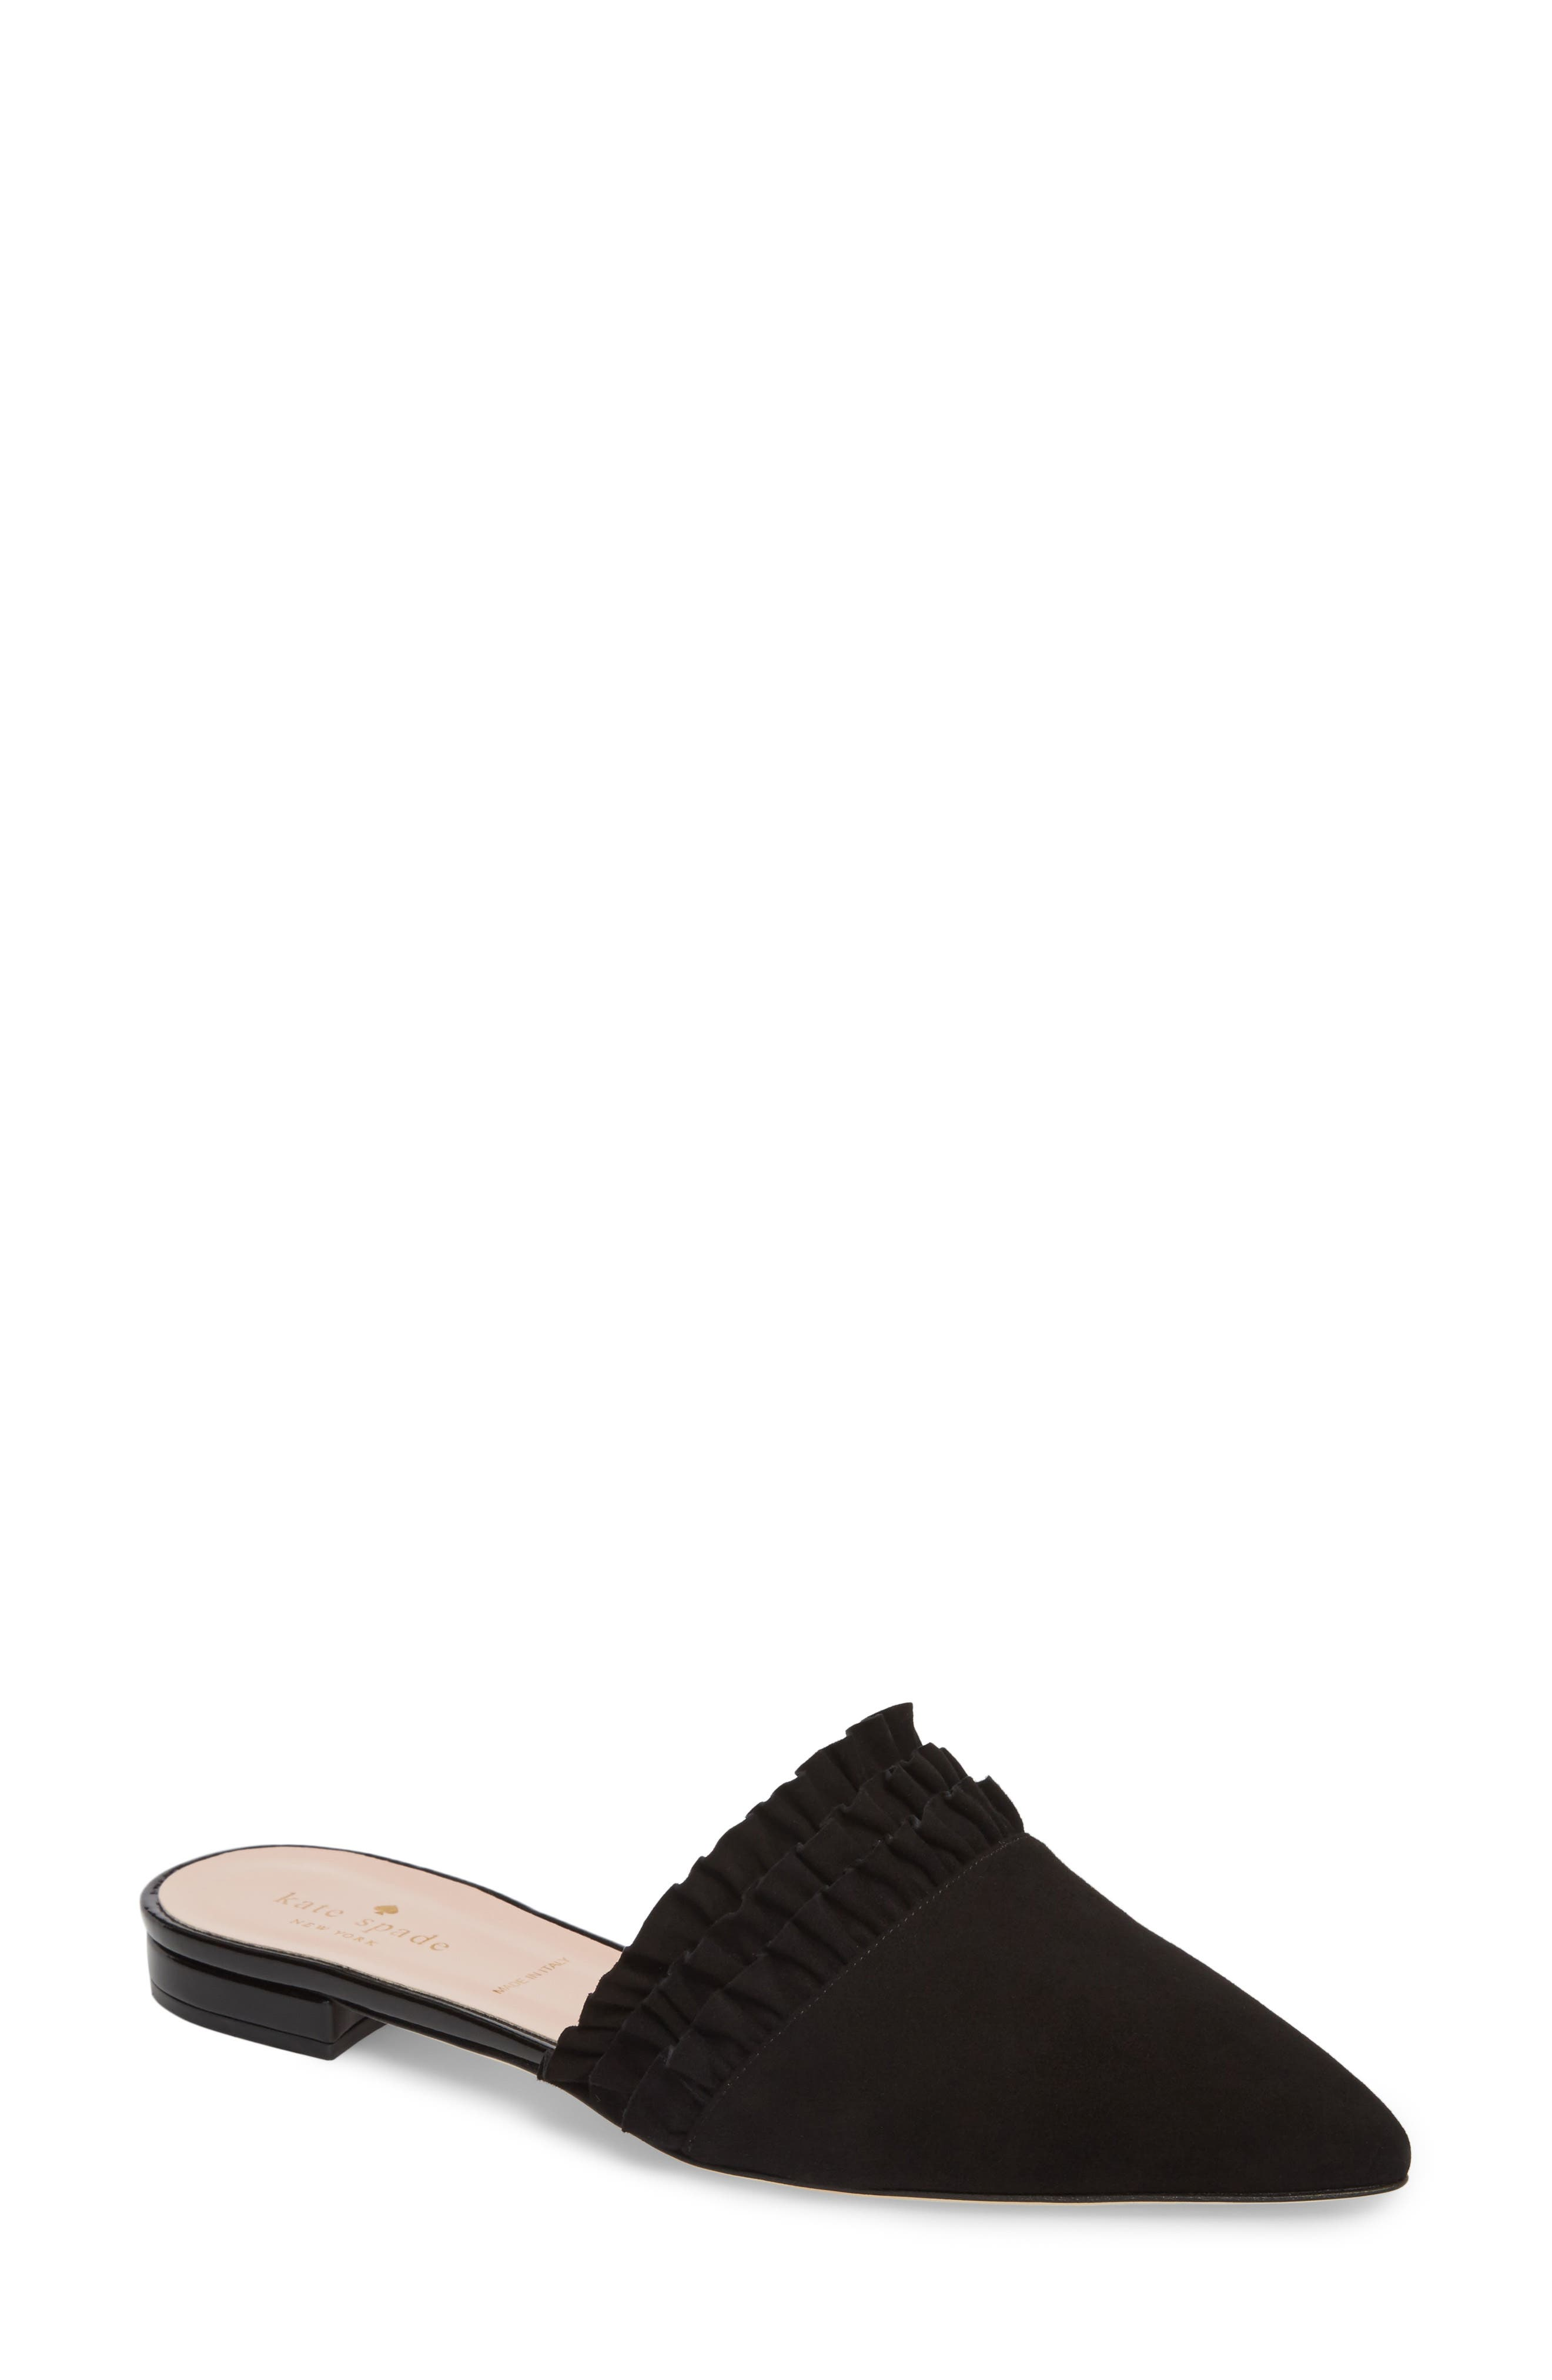 kate spade new york beatriz loafer flat (Women)